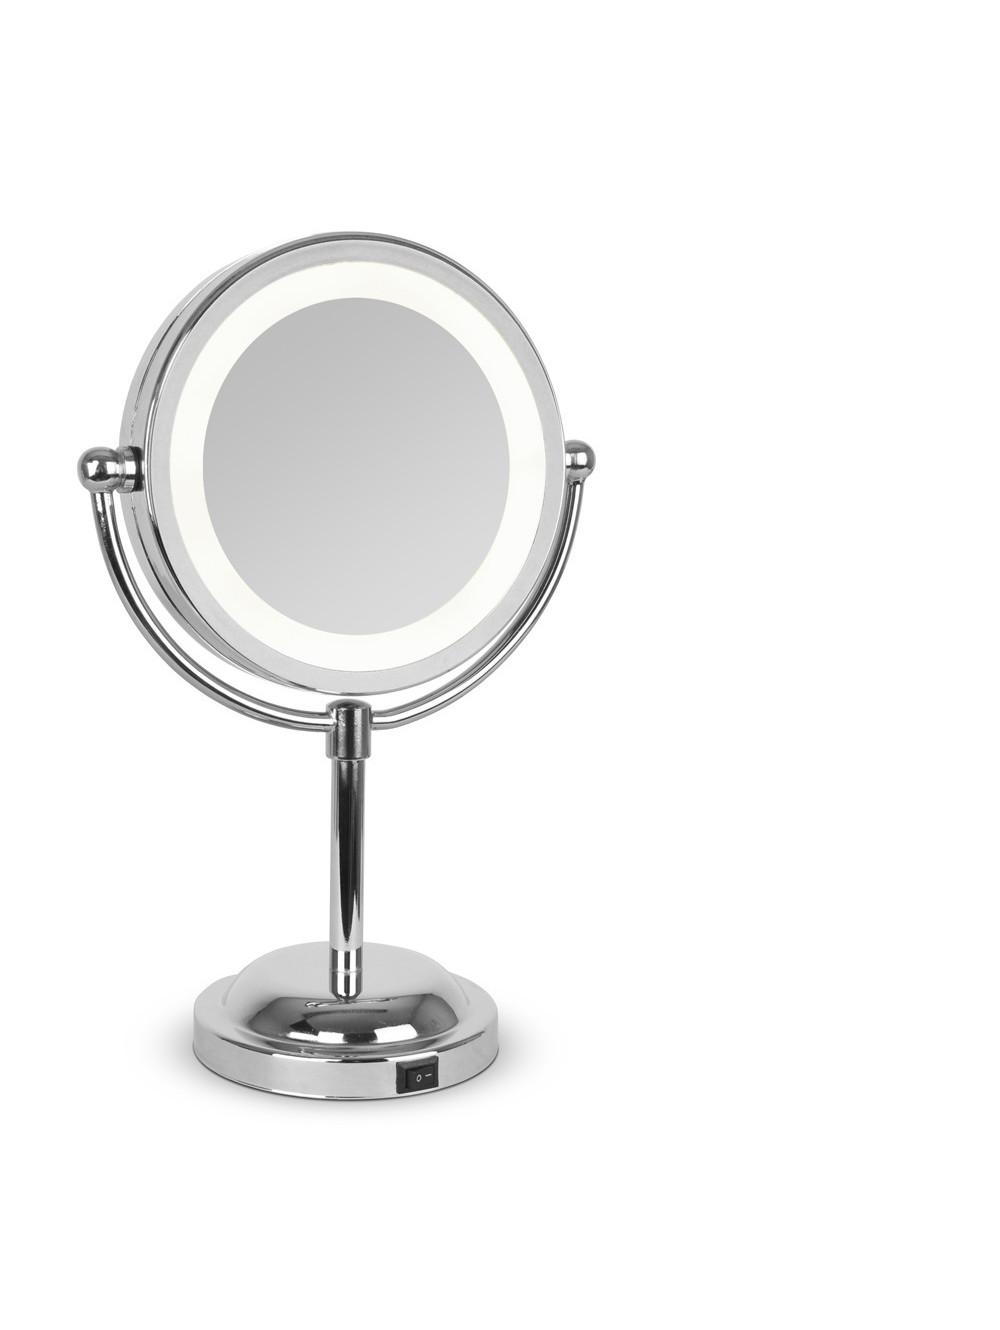 Small Round Light Up Free Standing Mirror | Valuelights Within Small Free Standing Mirrors (Image 19 of 20)